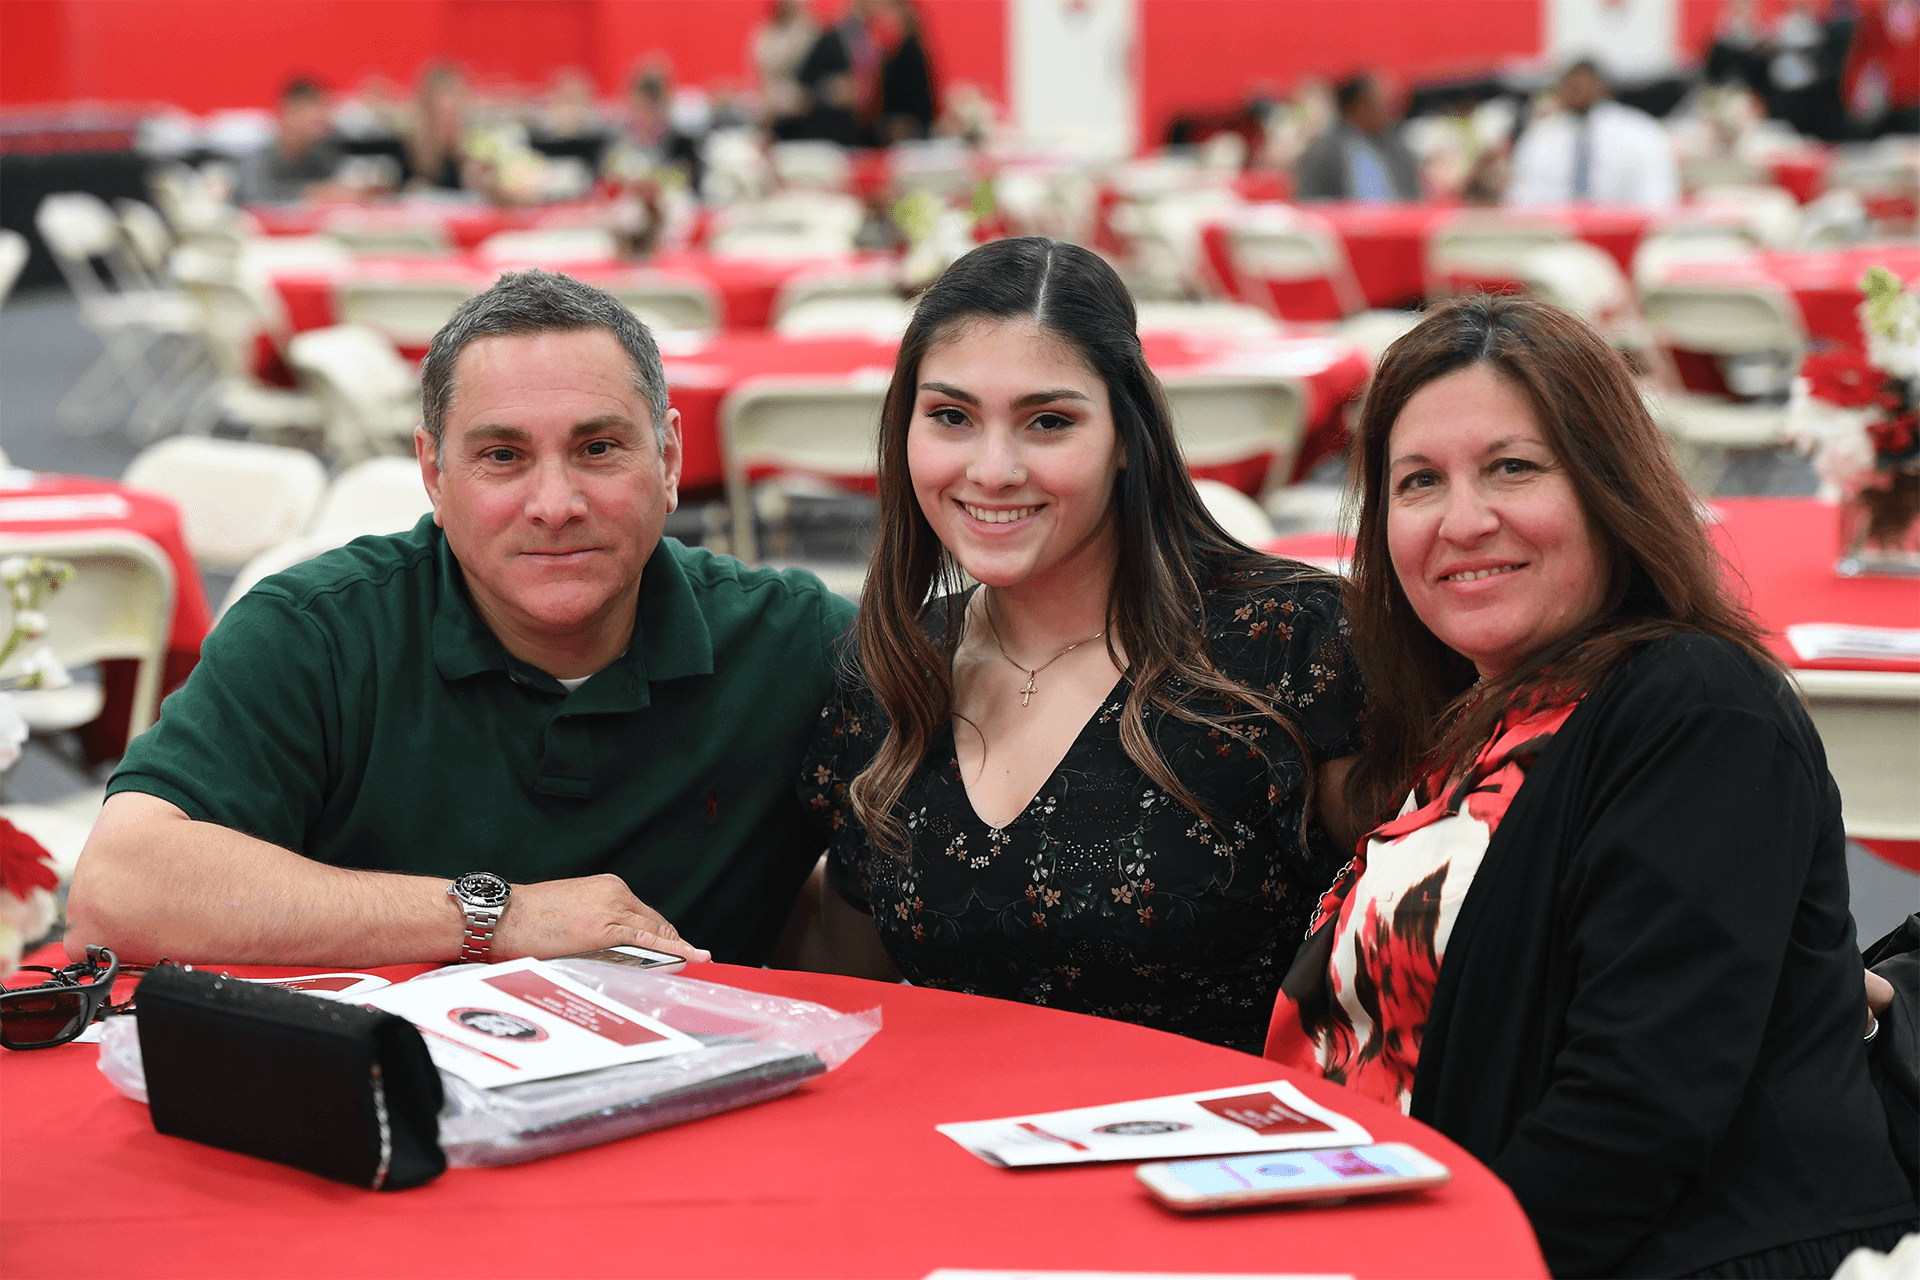 Parents with students